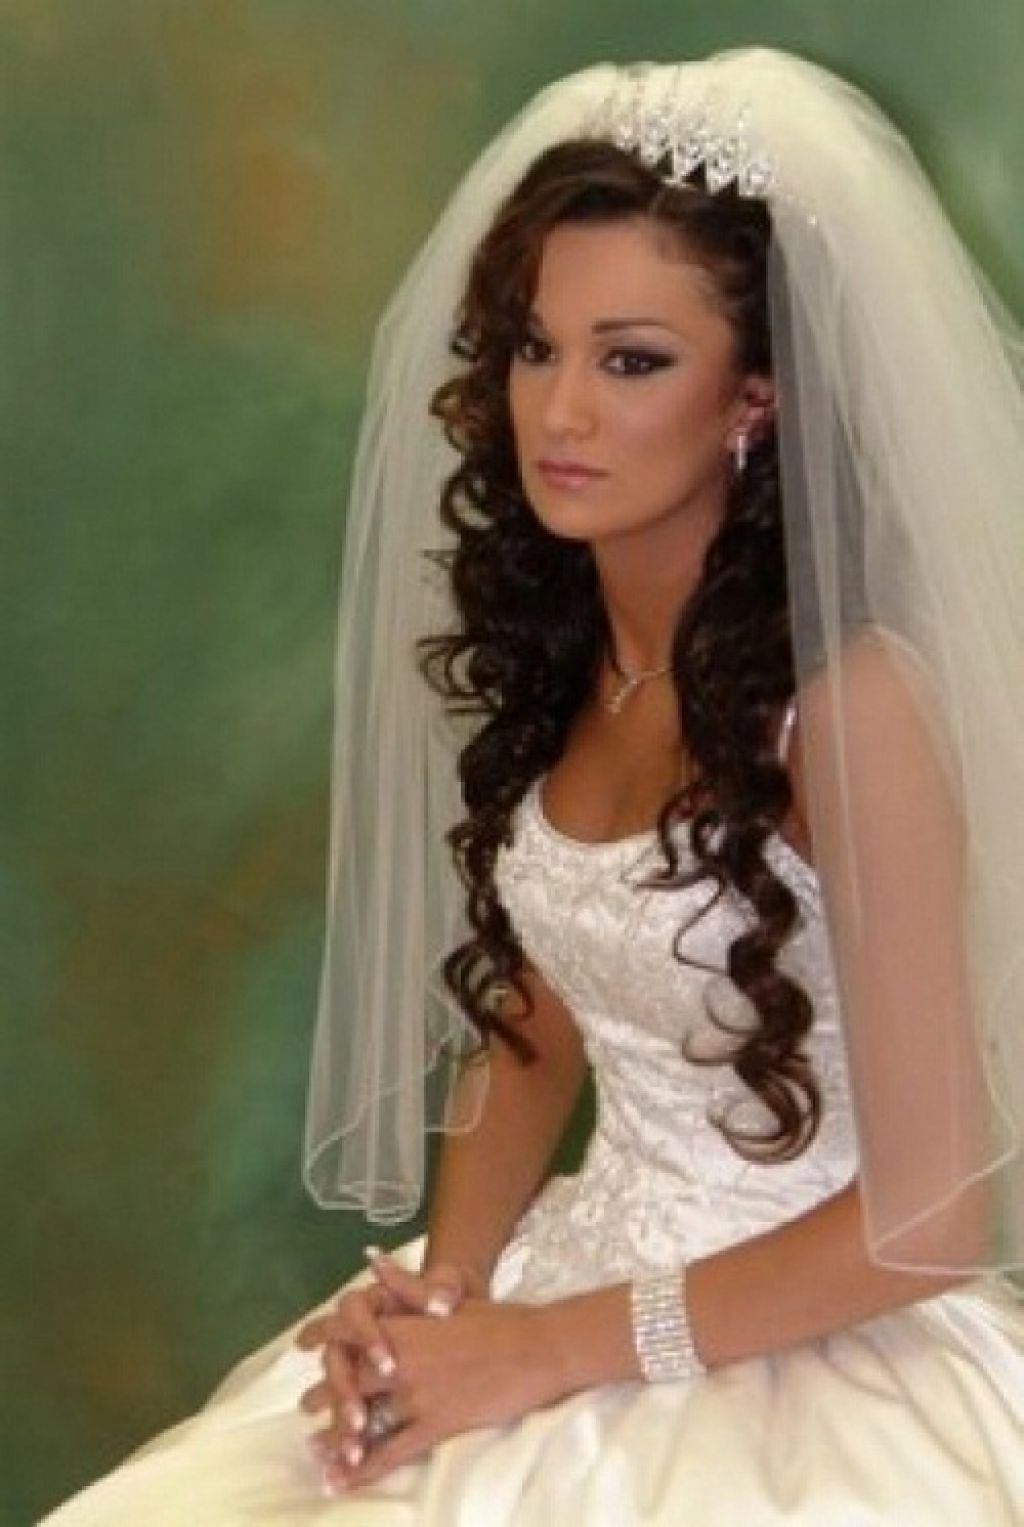 Wedding Hairstyles For Short Hair With Veil – Hairstyle For Women & Man Within Famous Wedding Hairstyles For Long Hair Down With Veil (View 13 of 15)